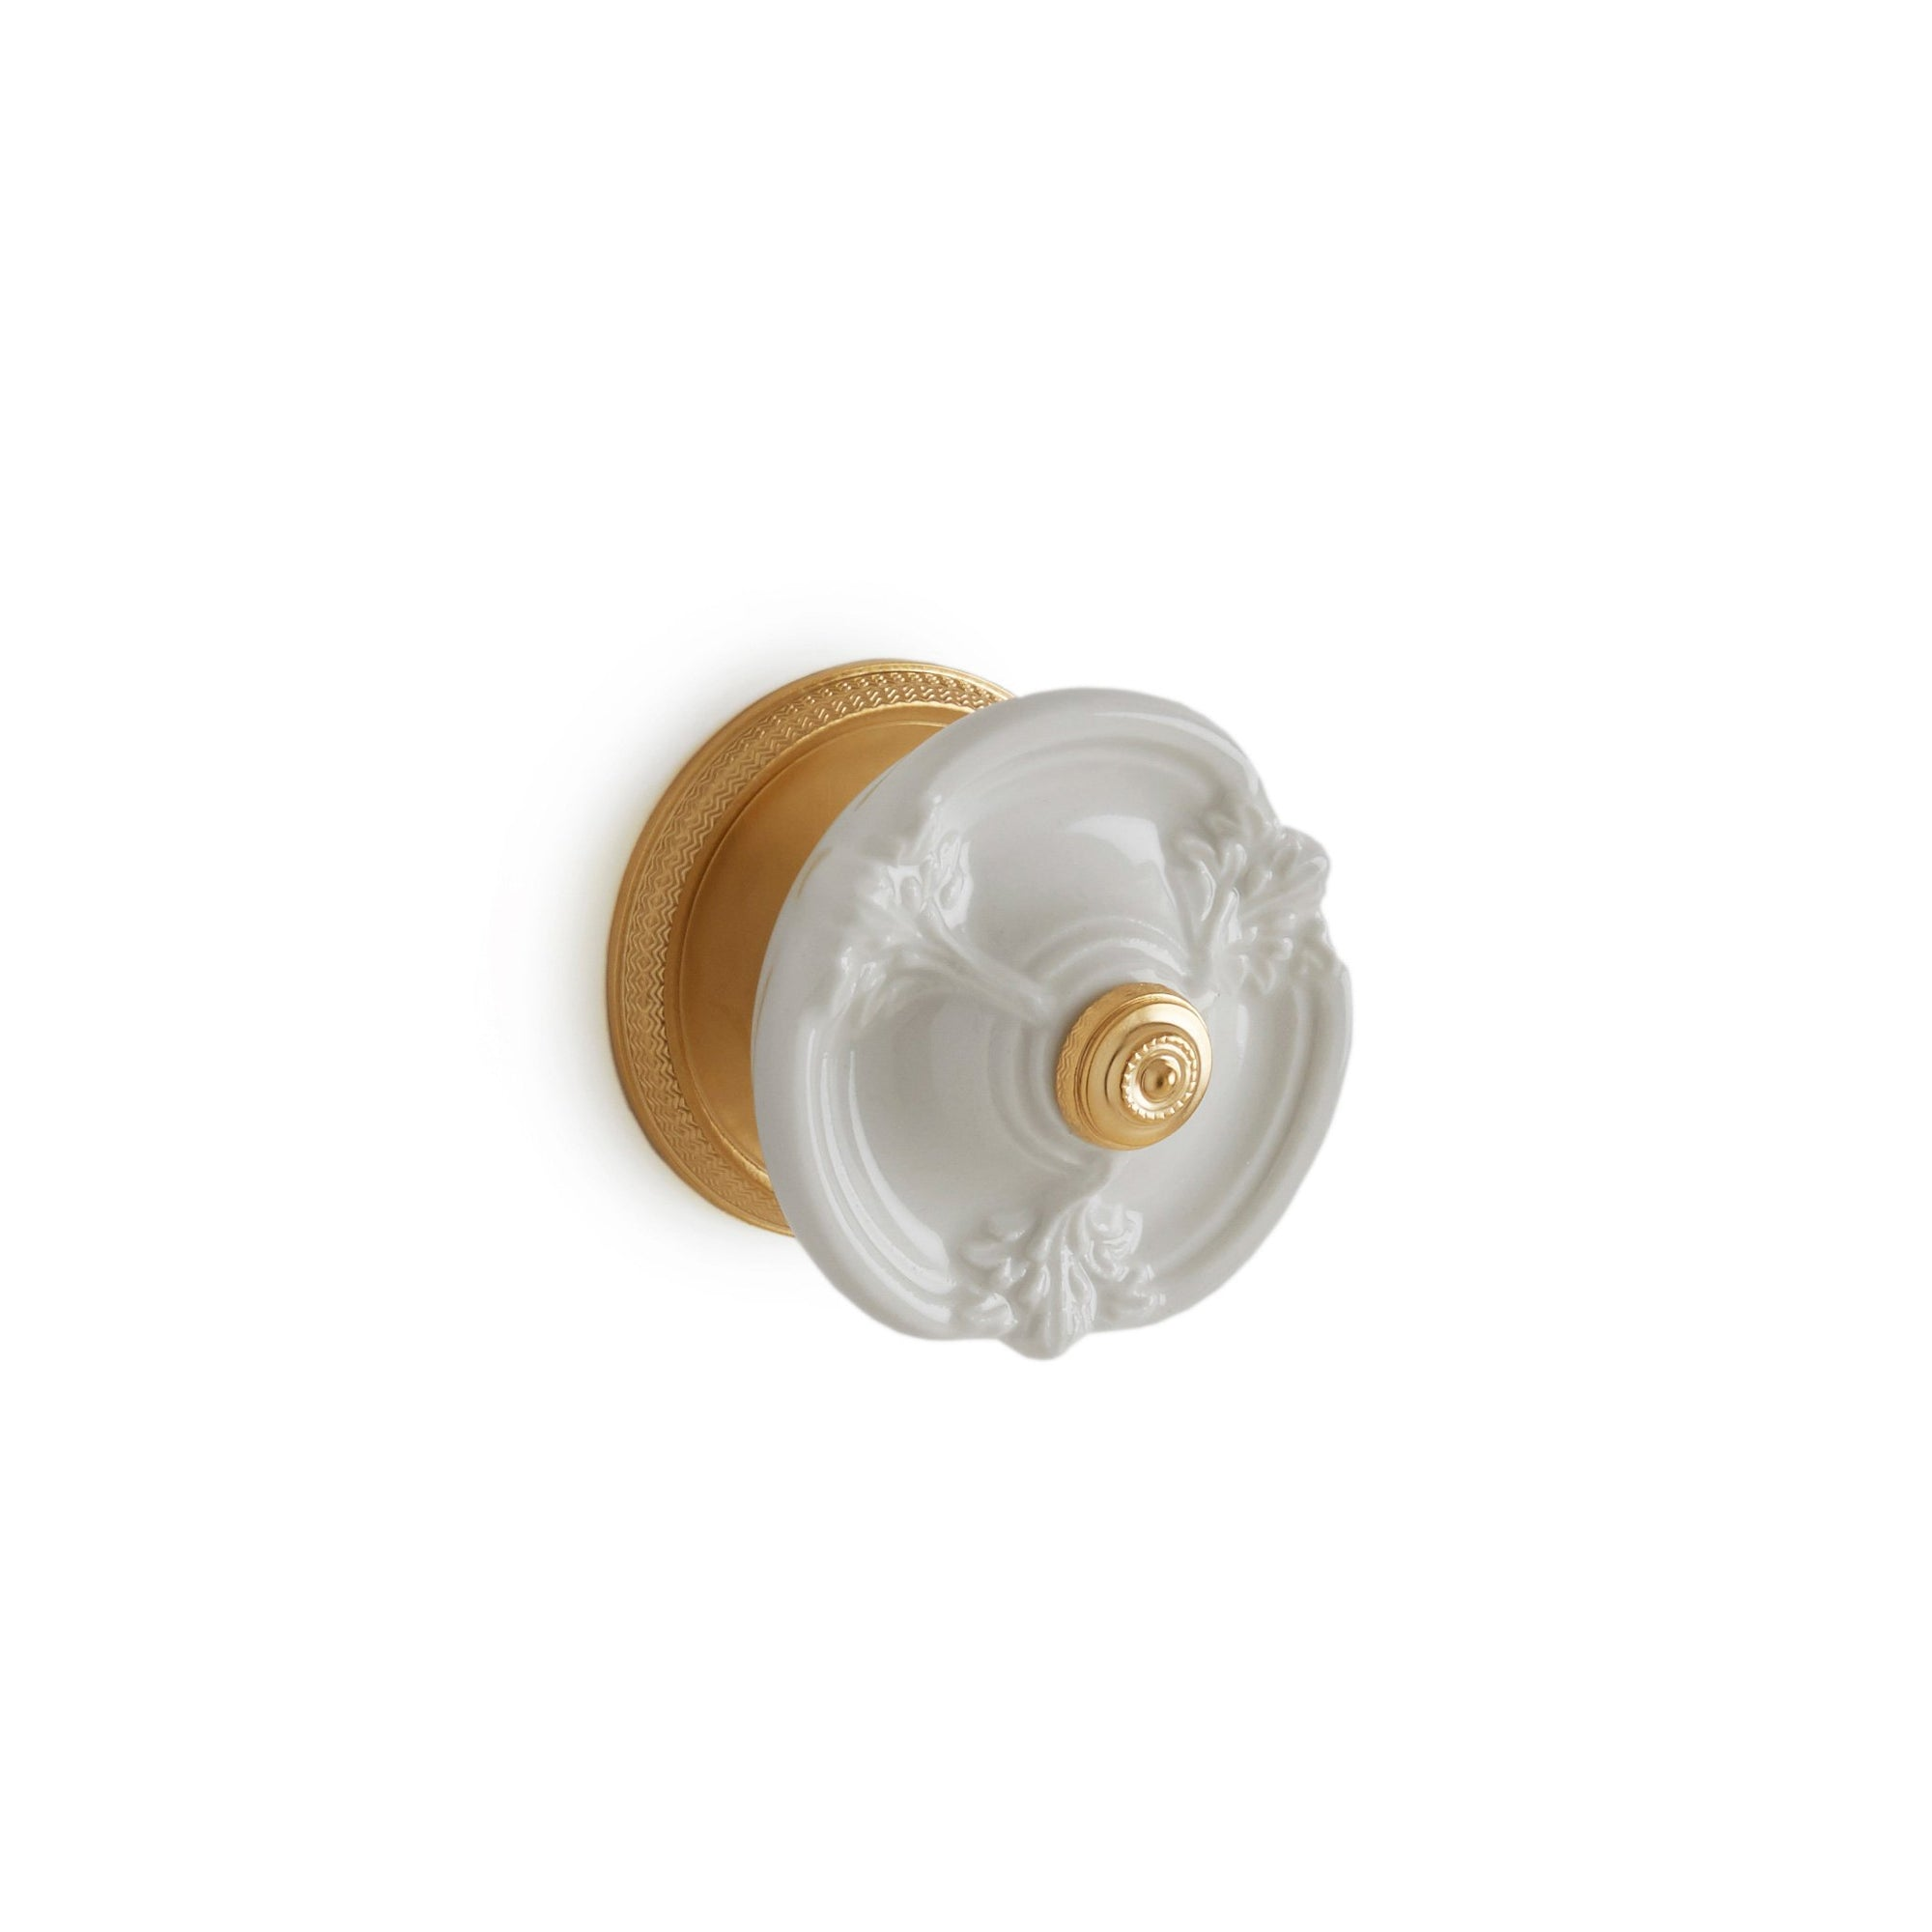 1097DOR-04WH-GP Sherle Wagner International Provence Ceramic Door Knob in Gold Plate metal finish with White Glaze inserts